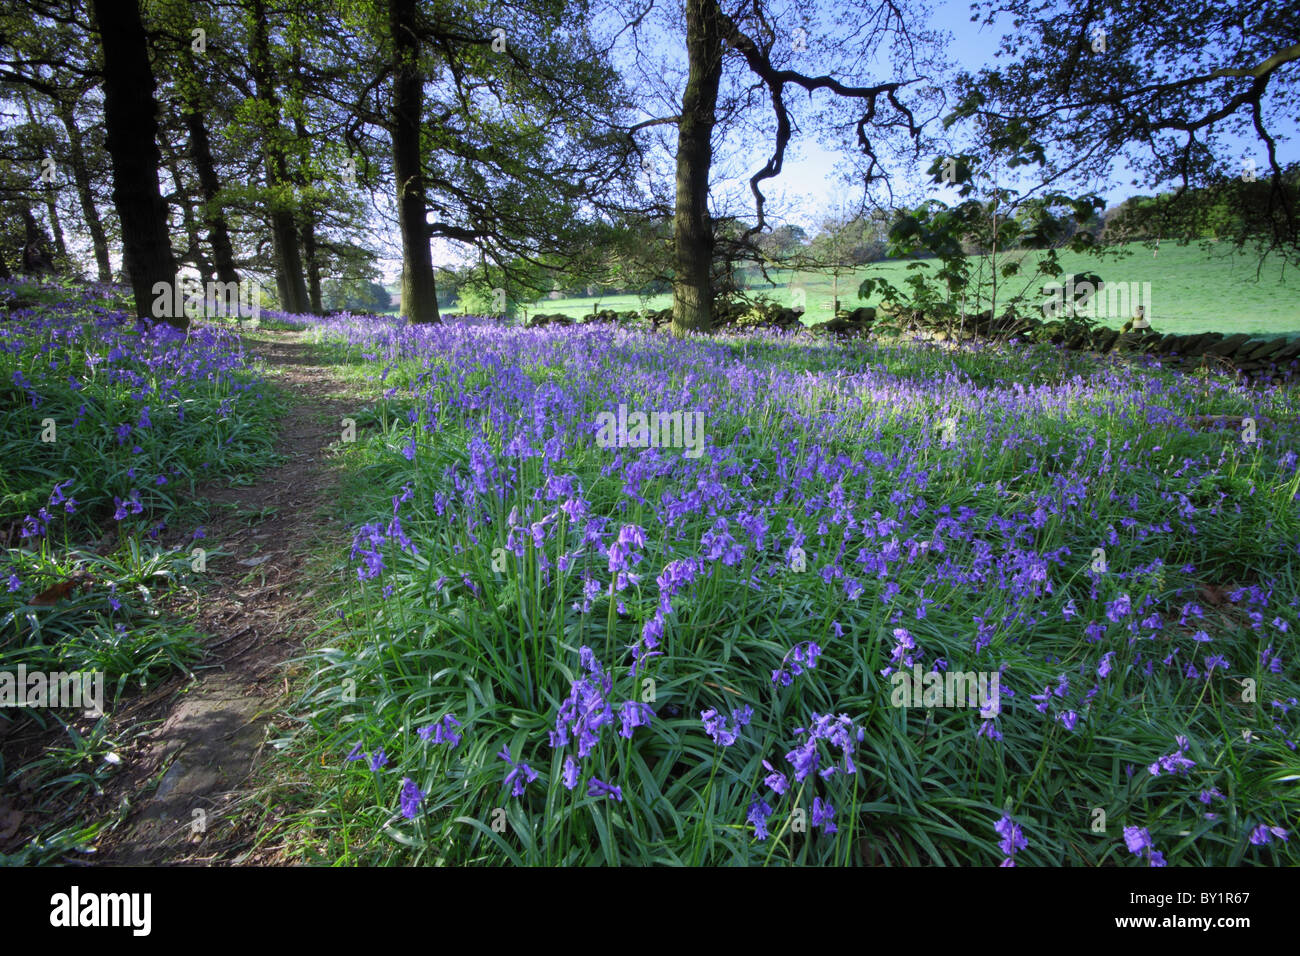 A path through a Bluebell Wood in Charnwood Forest, Leicestershire - Stock Image